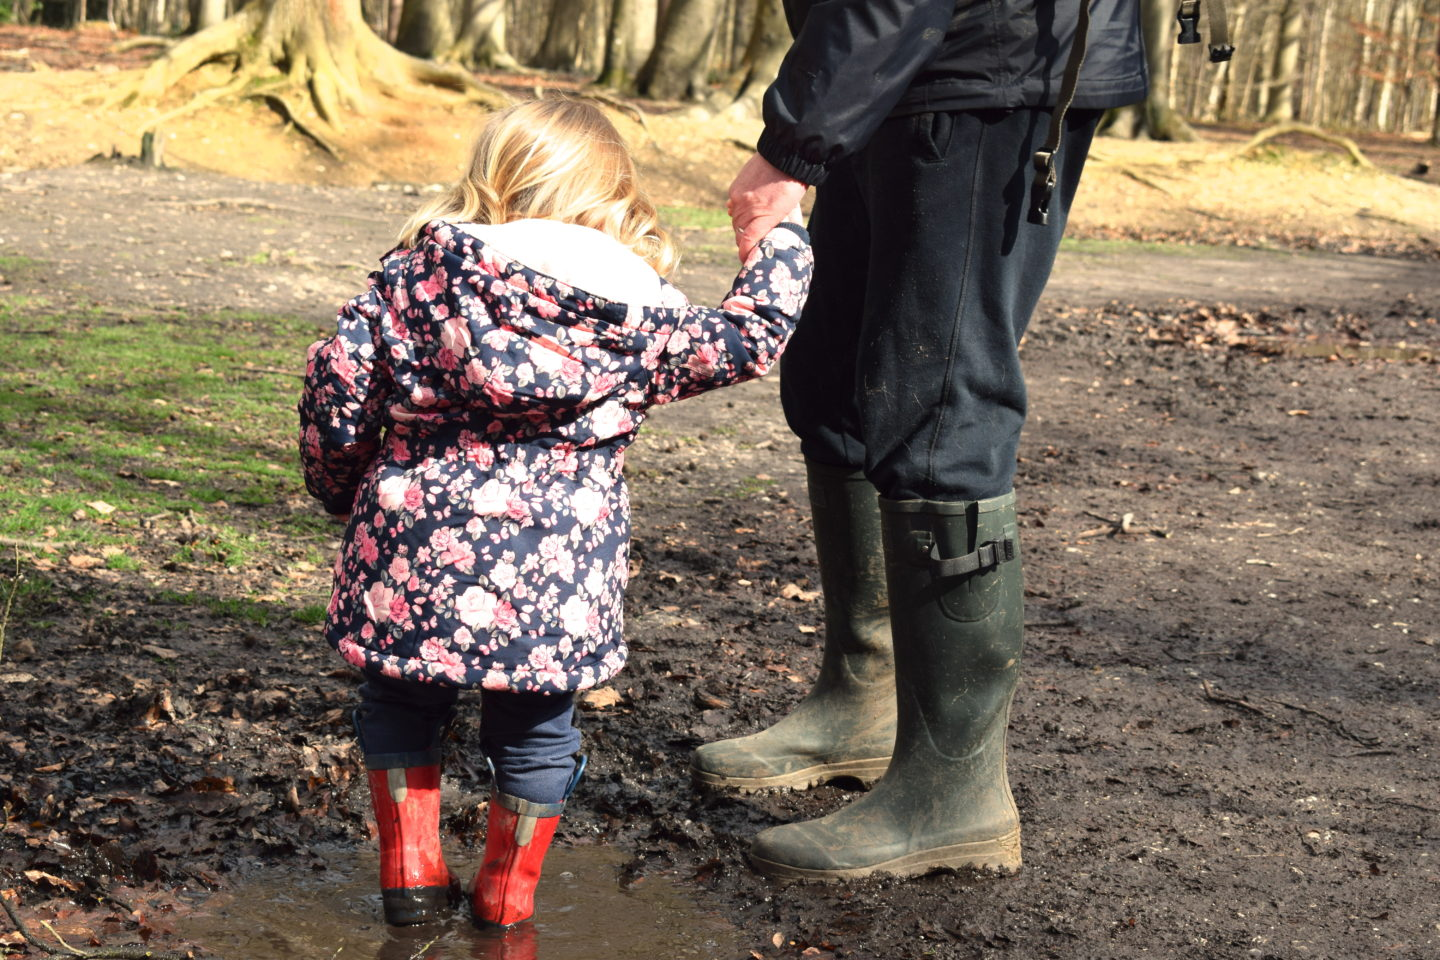 Two year old holding father's hand, splashing in puddle